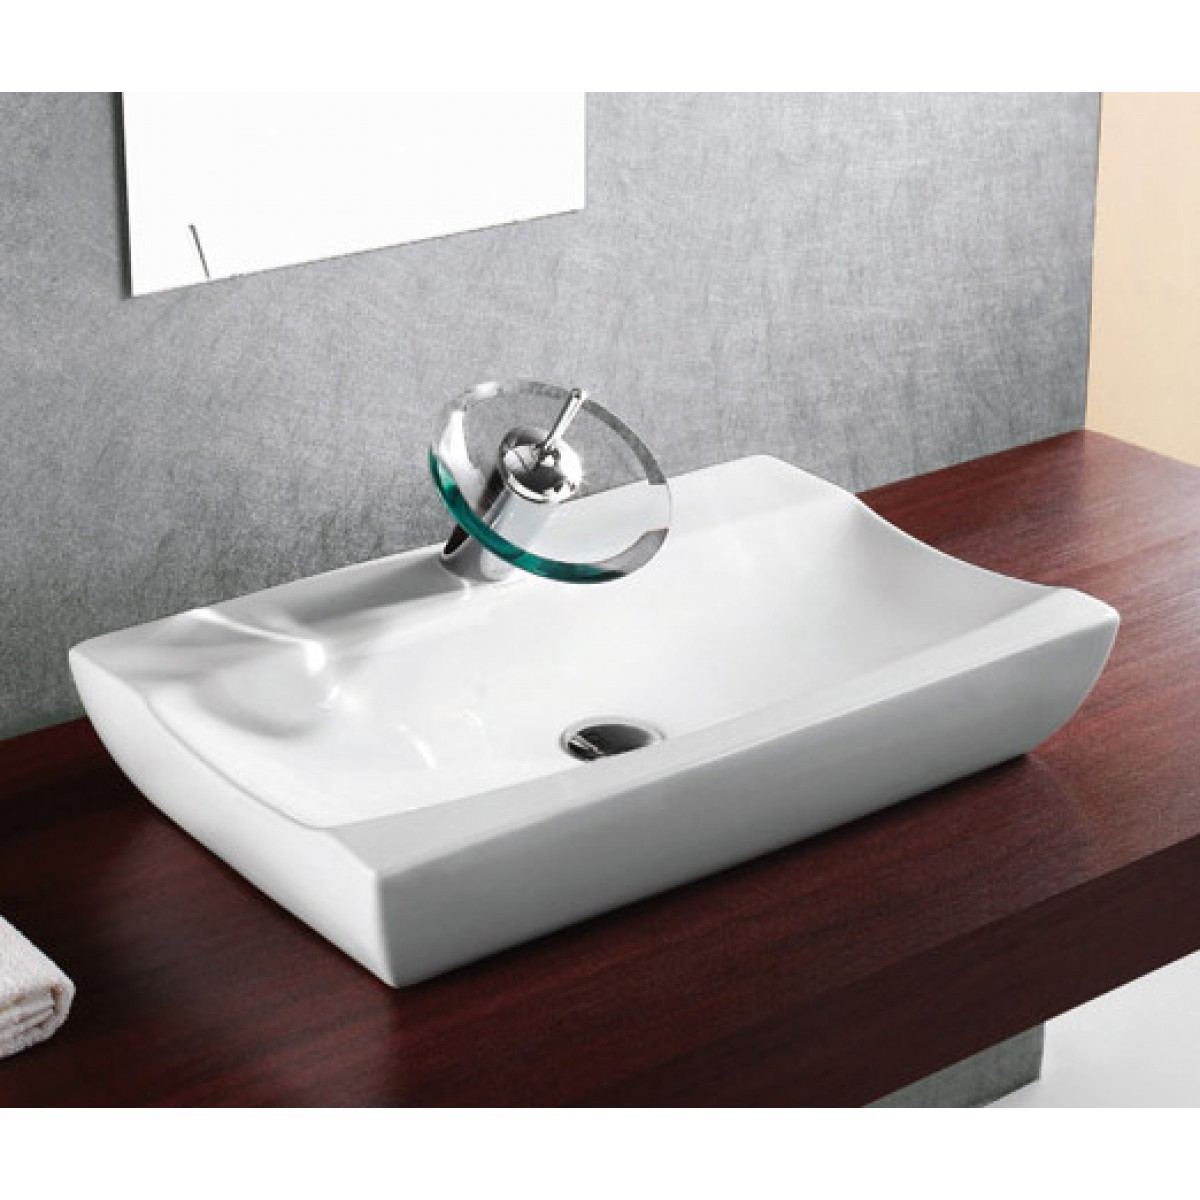 Porcelain Ceramic Single Hole Countertop Bathroom Vessel